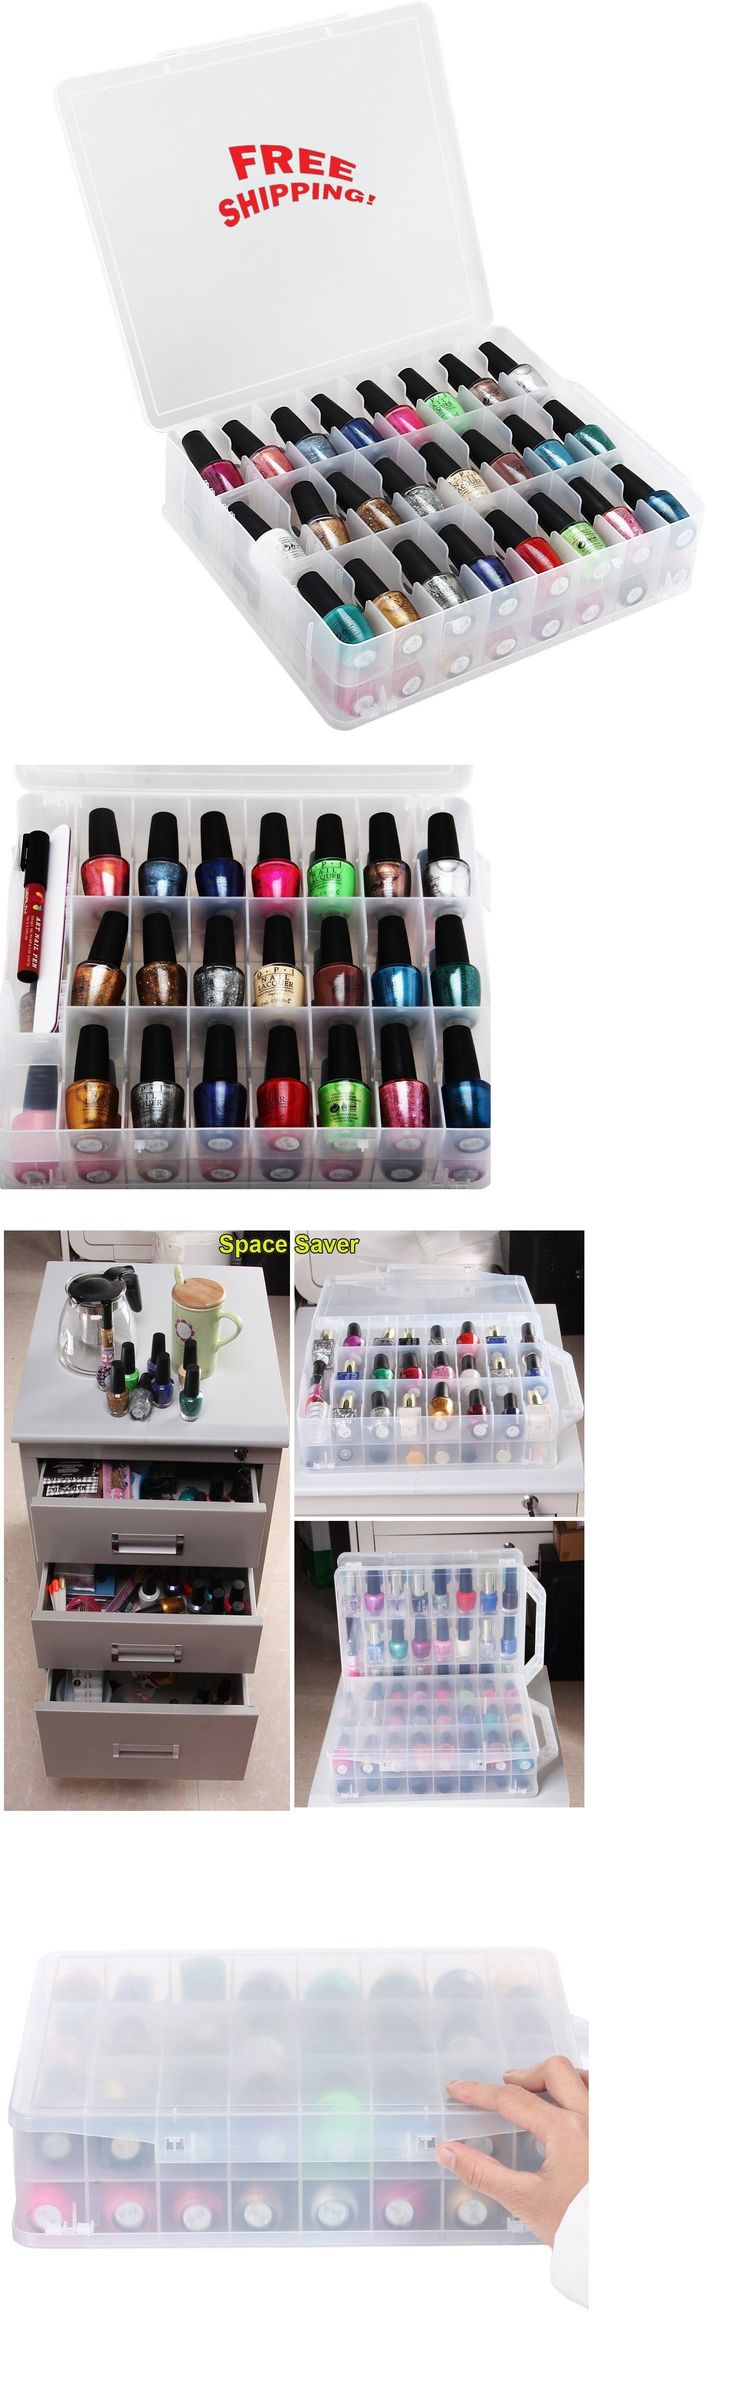 Nail Practice and Display: Carry Case Nail Polish Diy Holder Storage 48 Bottles Organizer Makeup Container -> BUY IT NOW ONLY: $34.34 on eBay!